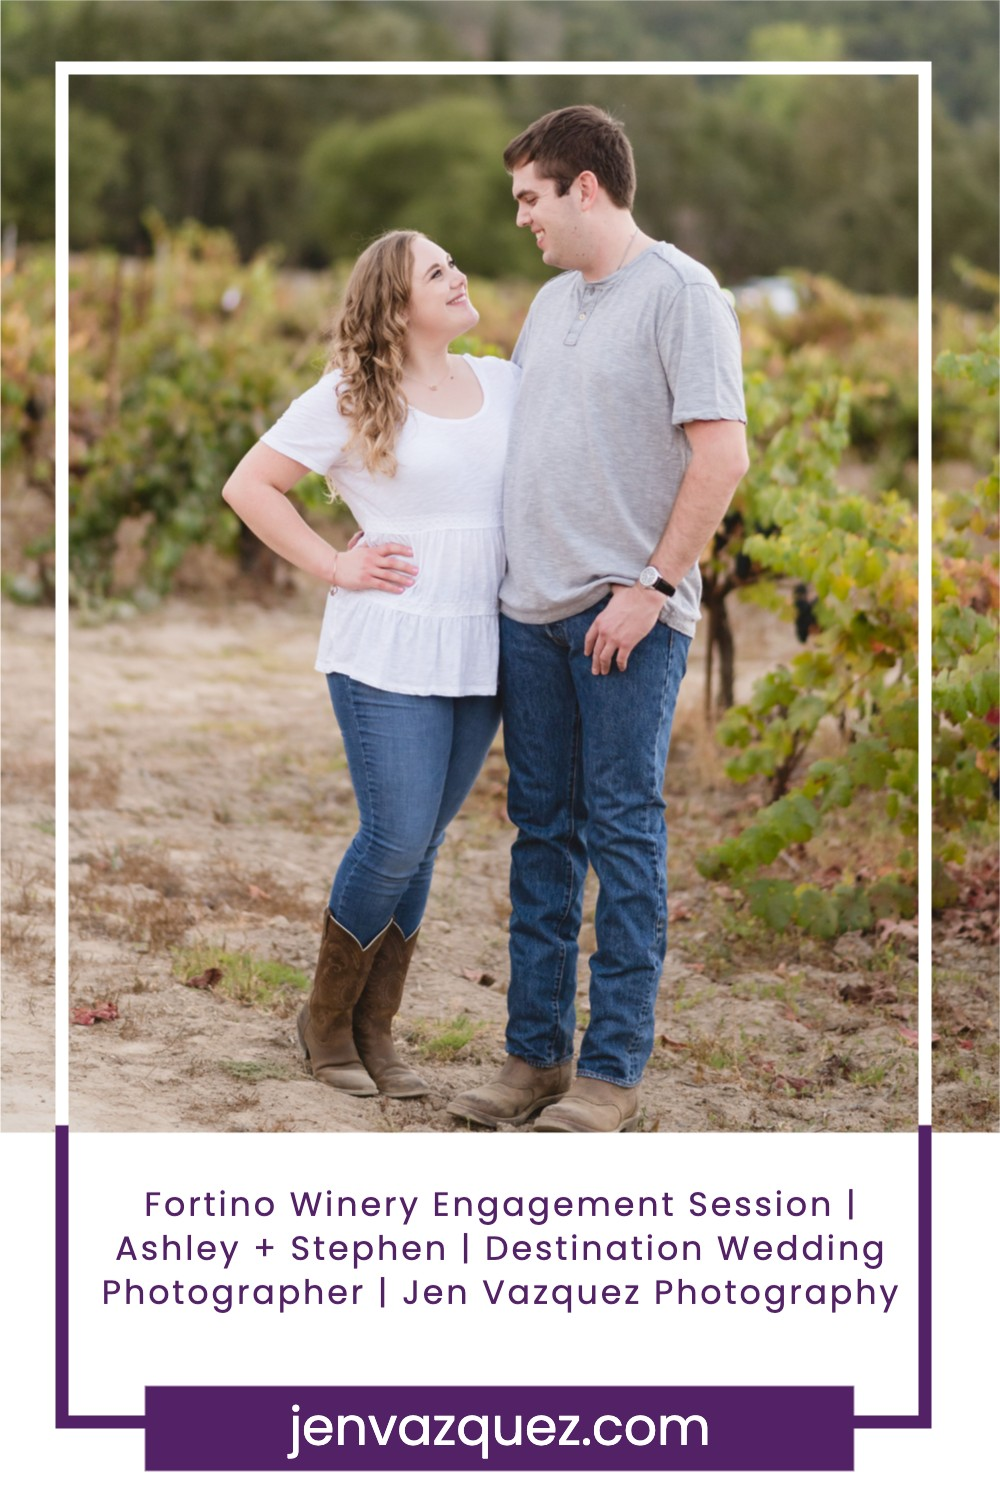 Fortino-Winery-Engagement-Session-|-Ashley-+-Stephen-|-Destination-Wedding-Photographer-|-Jen-Vazquez-Photography 4